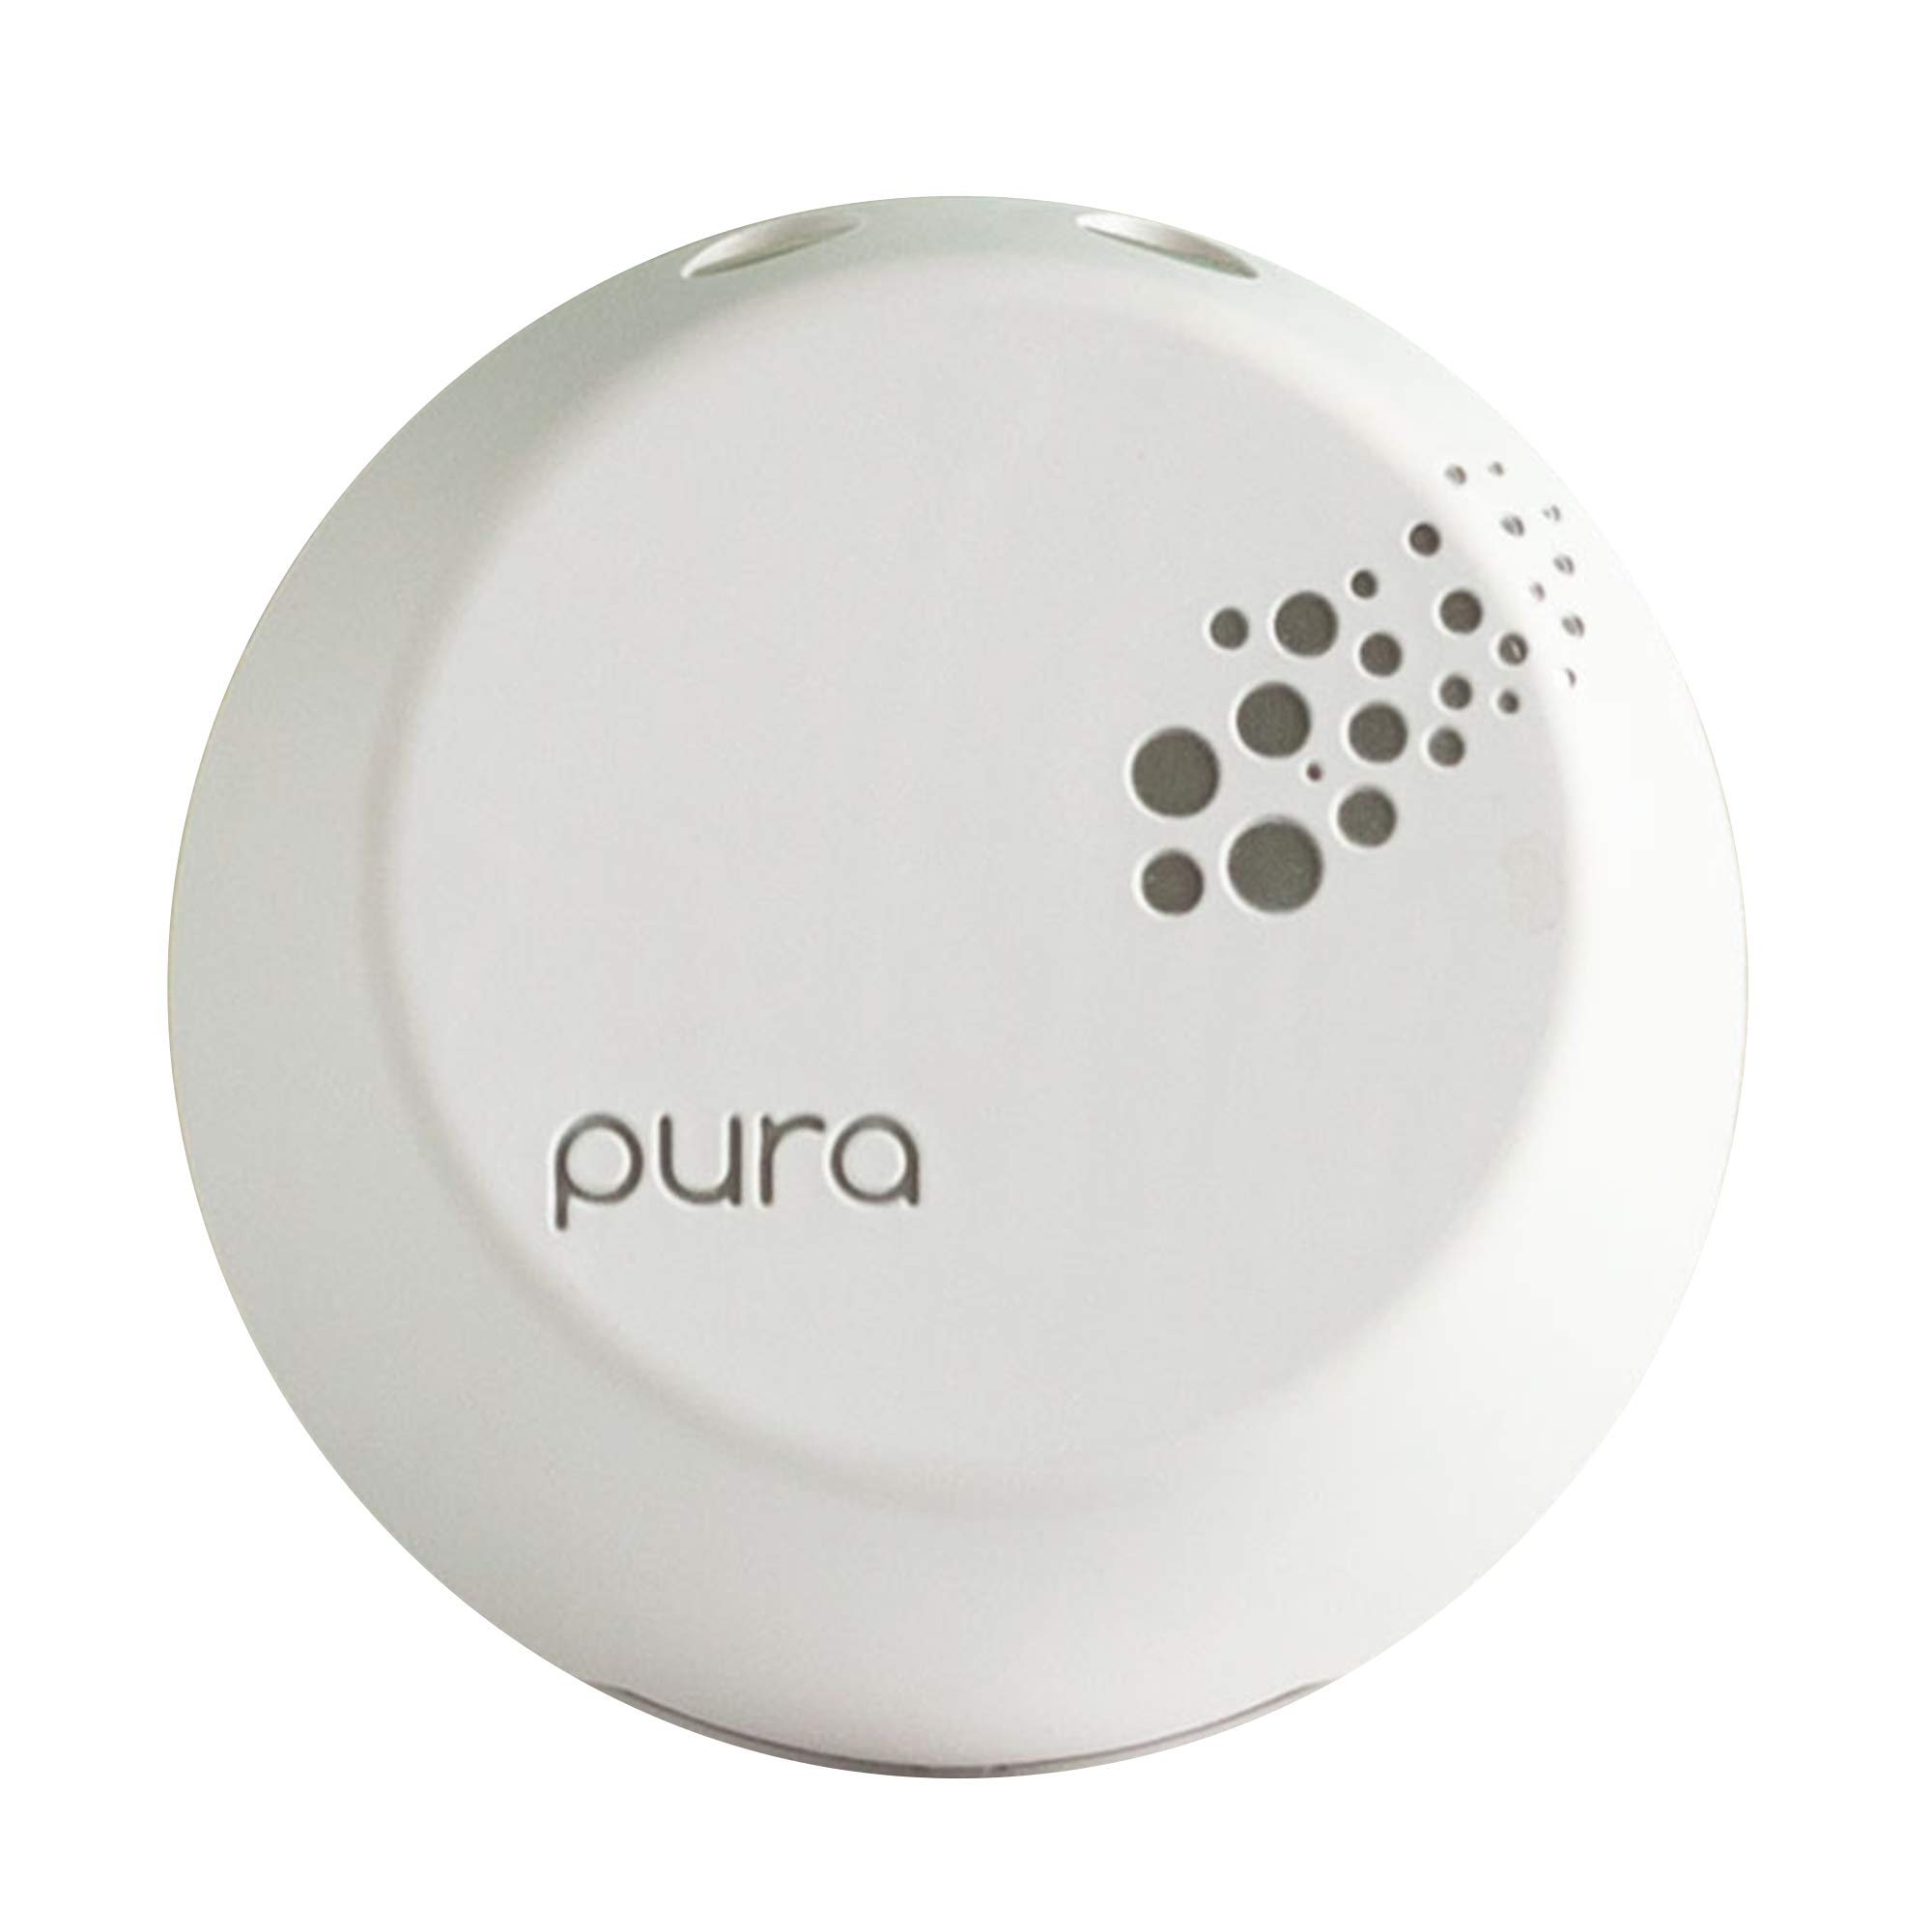 Pura Automated Home Fragrance Device | Intelligent Smart Home Air Freshener by PURA